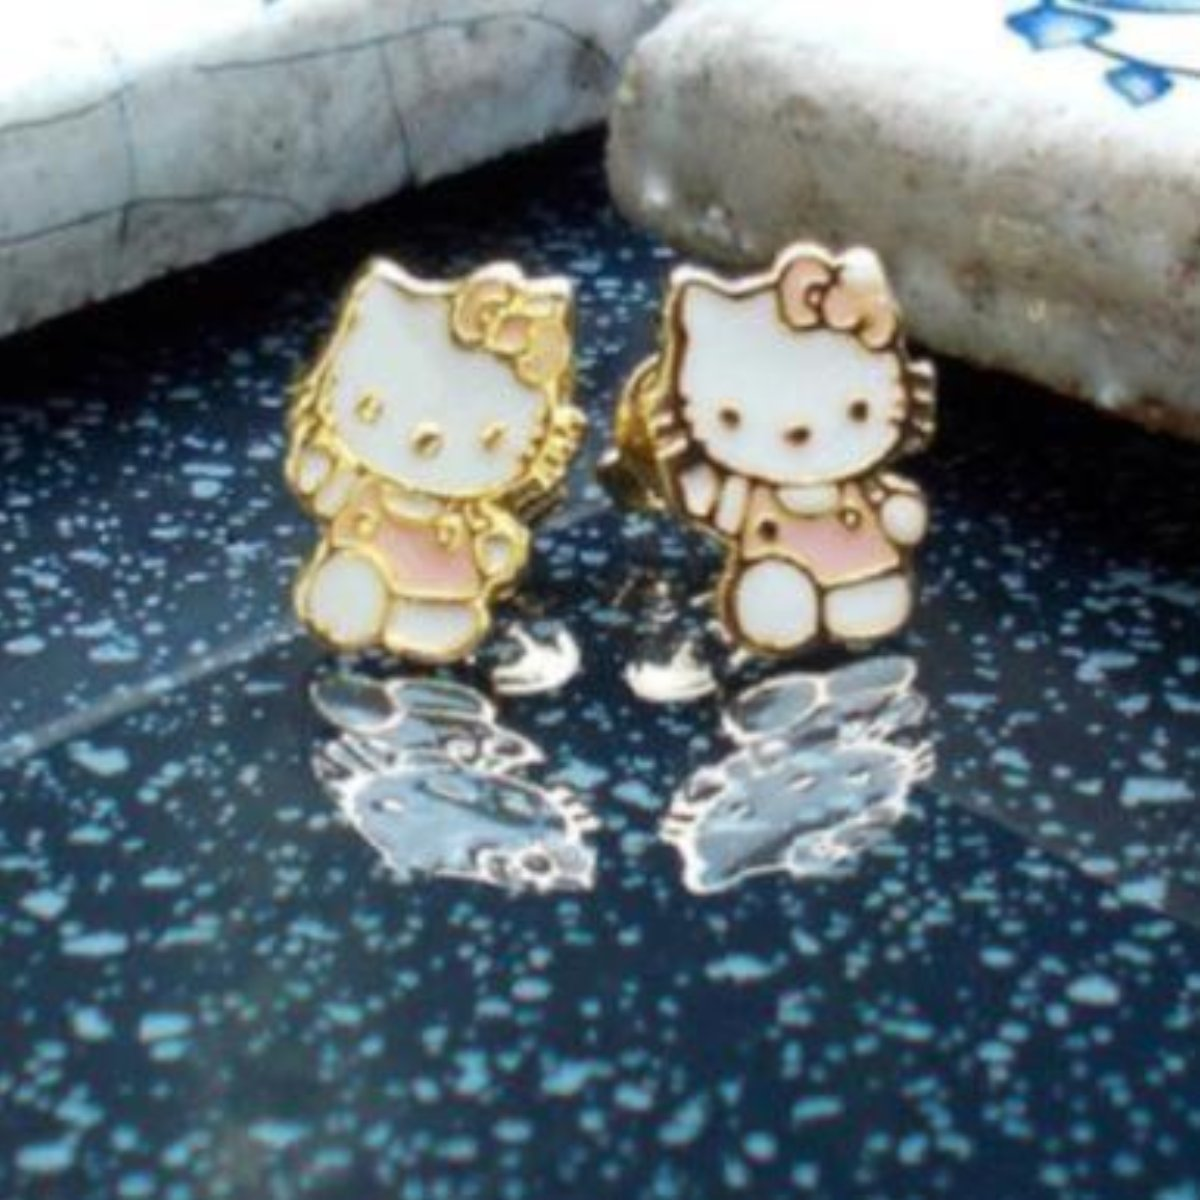 18ct Gold Plated 'Hello Kitty' Stud Earrings